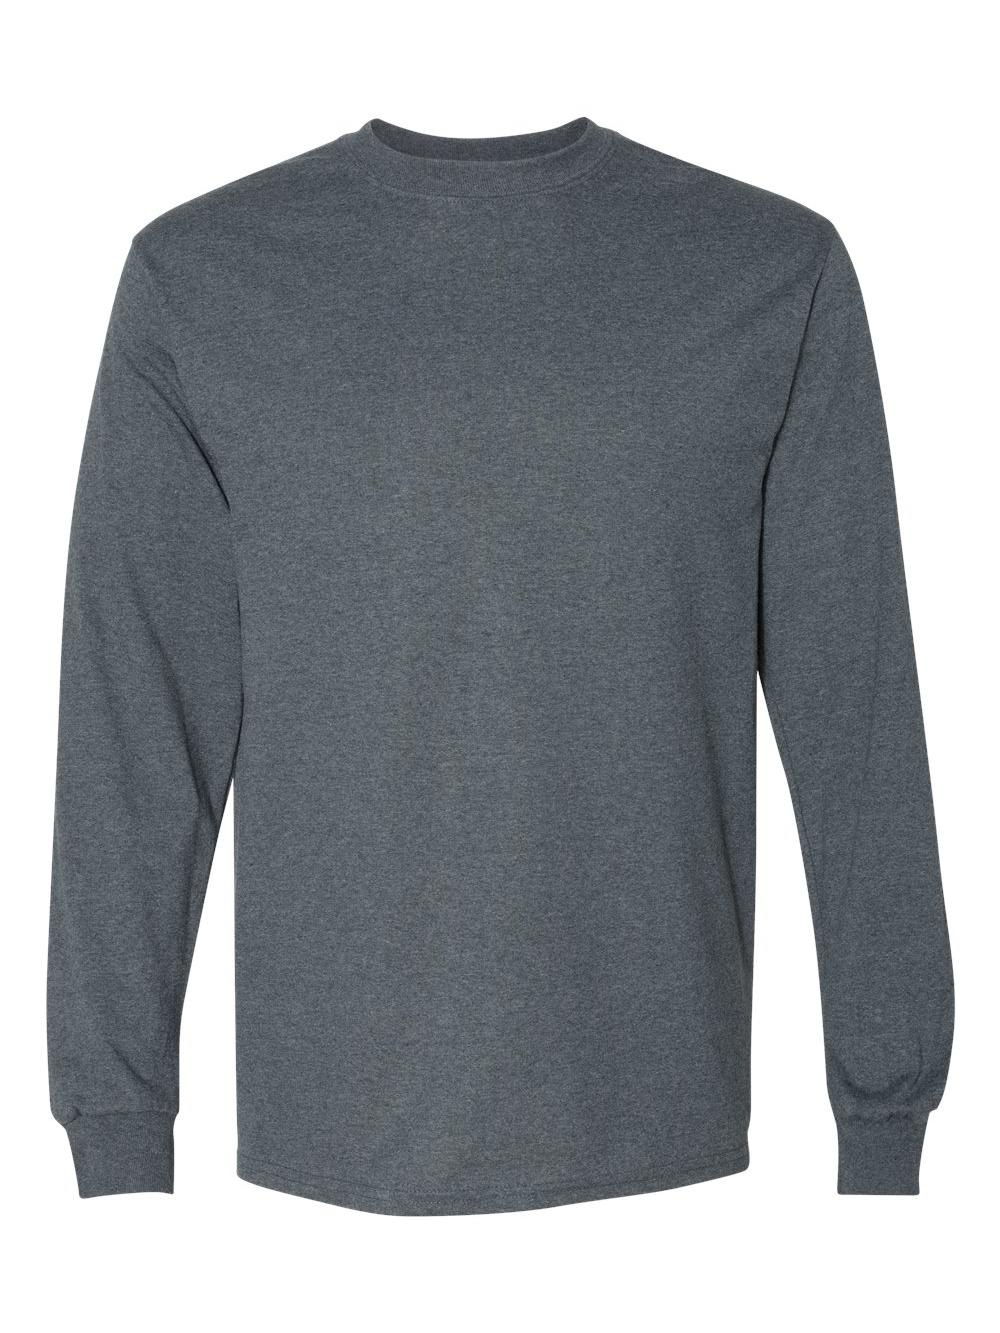 Gildan-DryBlend-50-50-Long-Sleeve-T-Shirt-8400 thumbnail 12